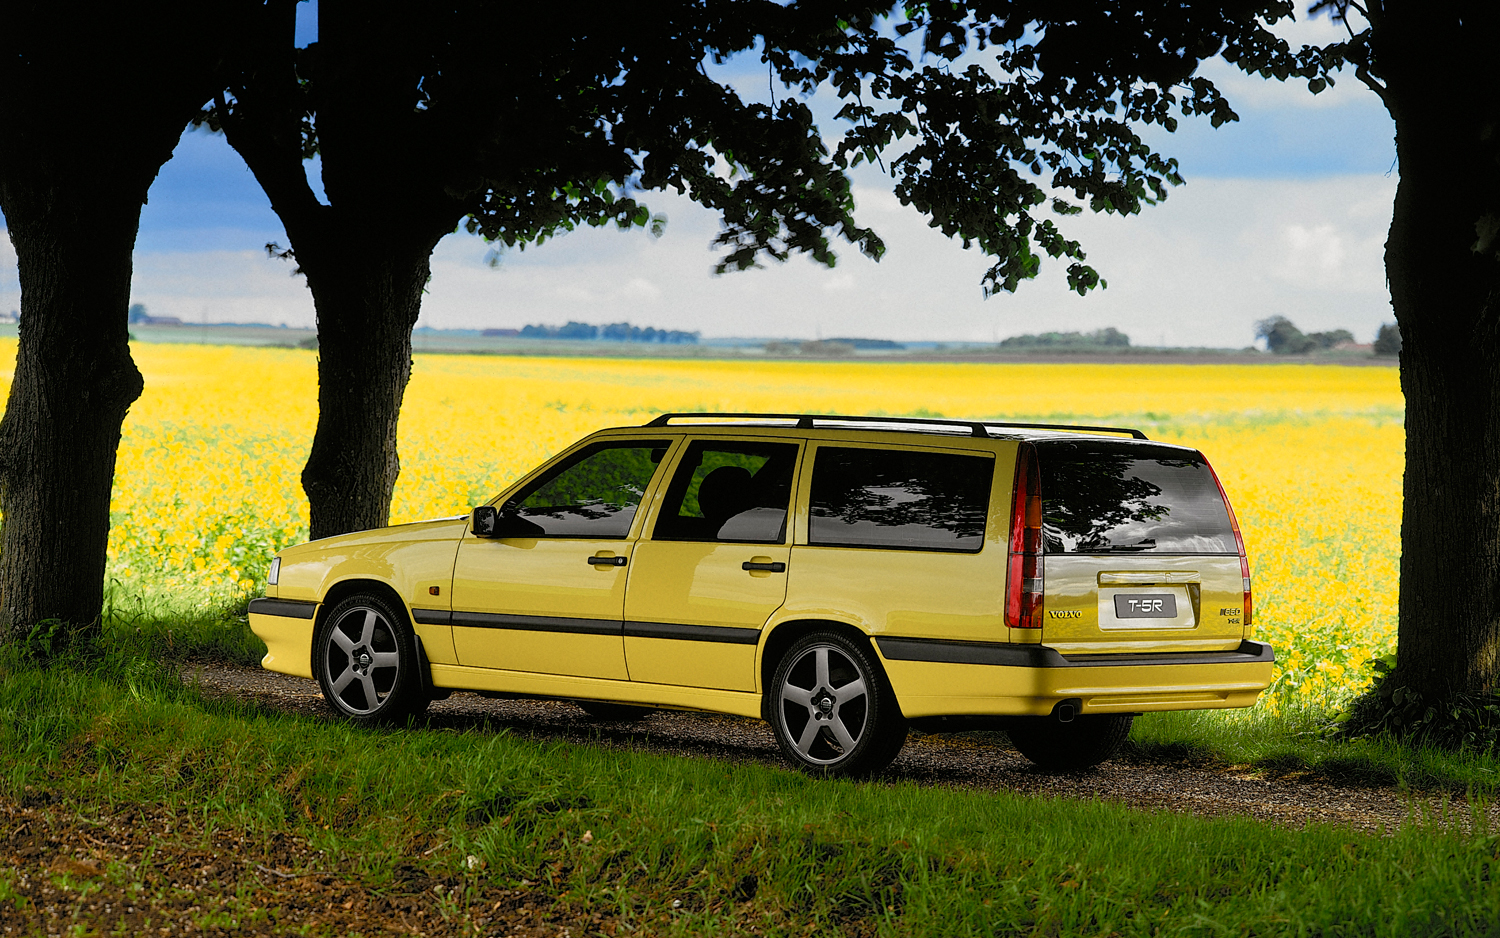 volvo-850-wagon-ultimate-sweeper-by-jane-b-for-wheelsbywovka-2